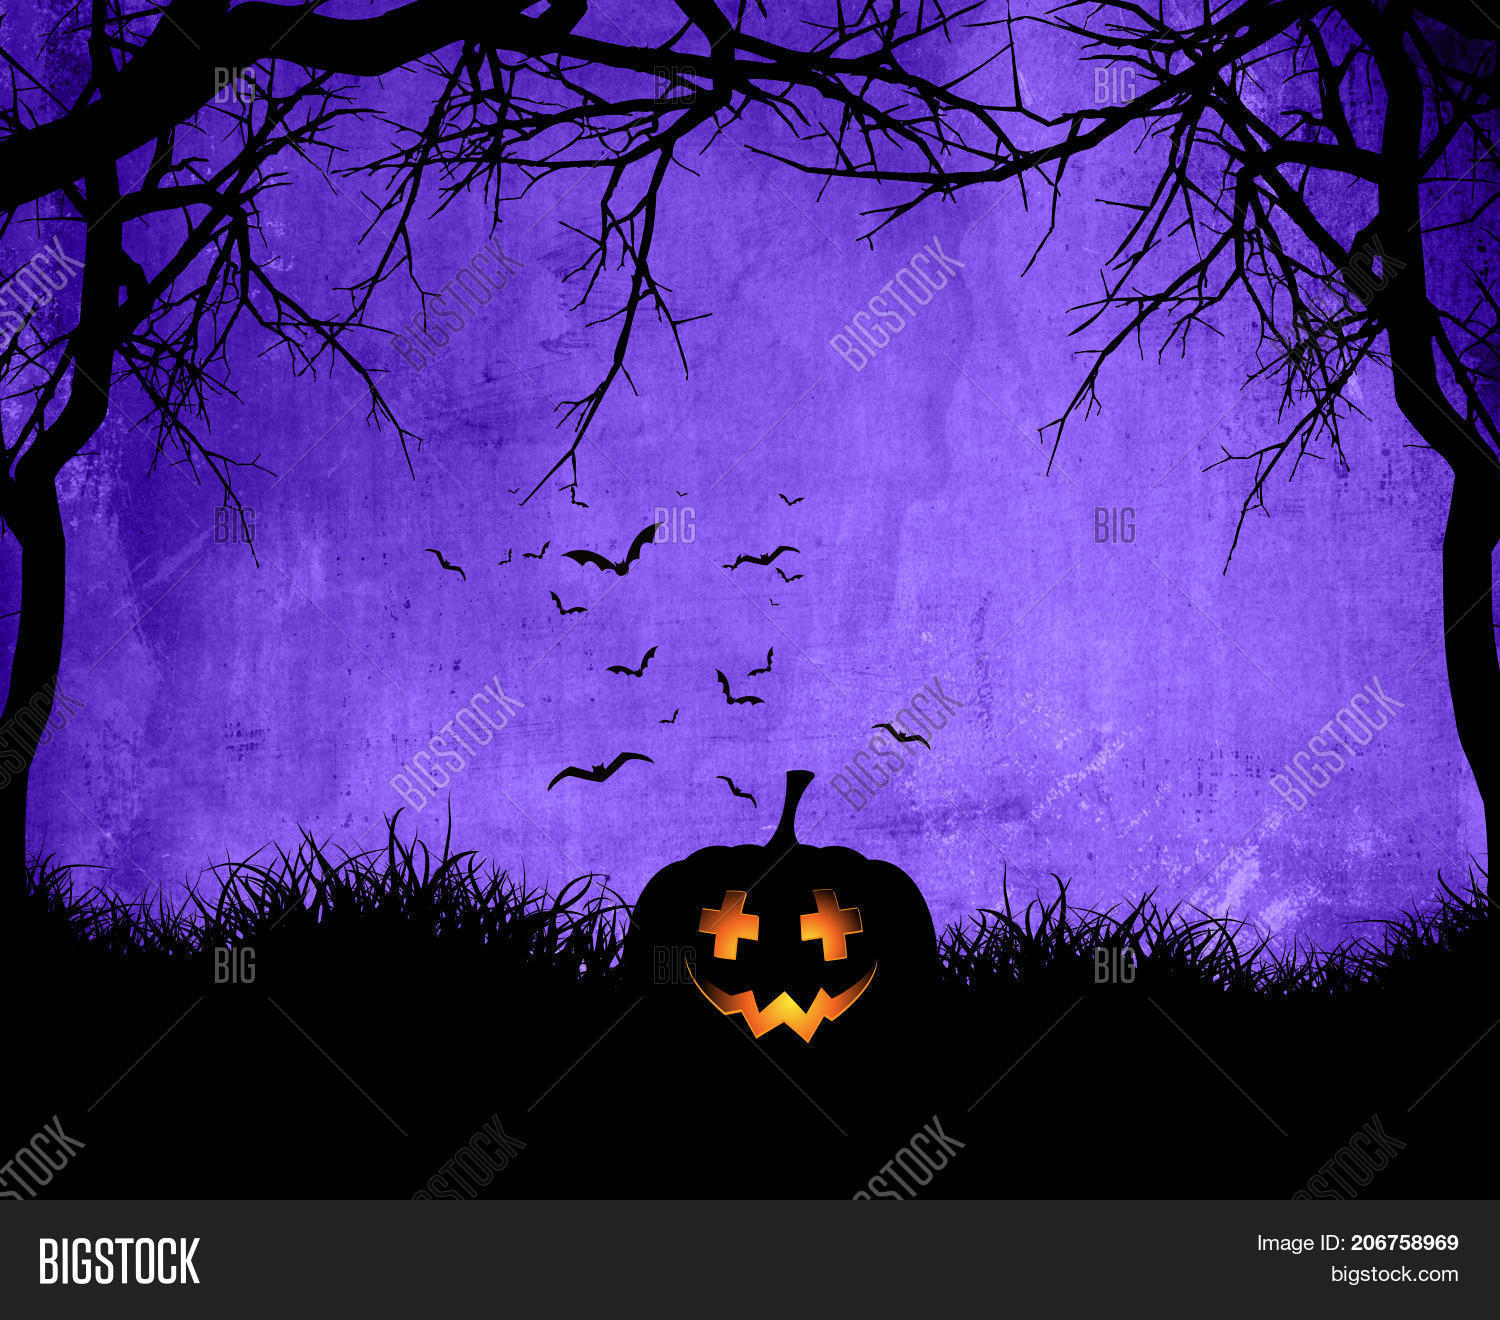 Halloween Background Image & Photo (Free Trial)